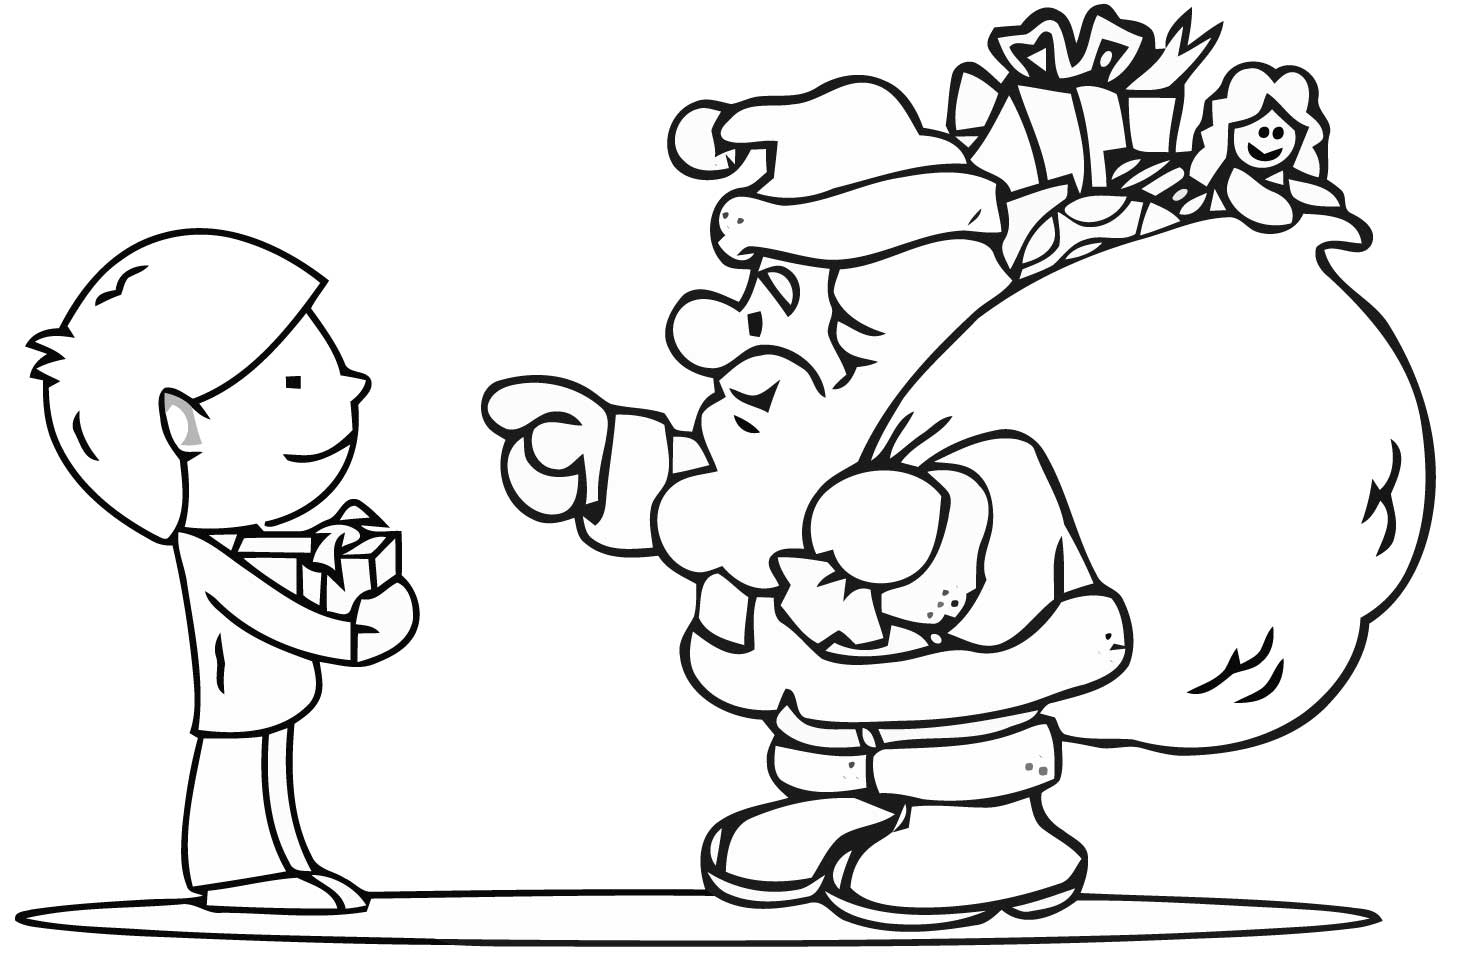 free christmas coloring pages for kids | Free Christmas Colouring Pages For Children | Kids Online ...